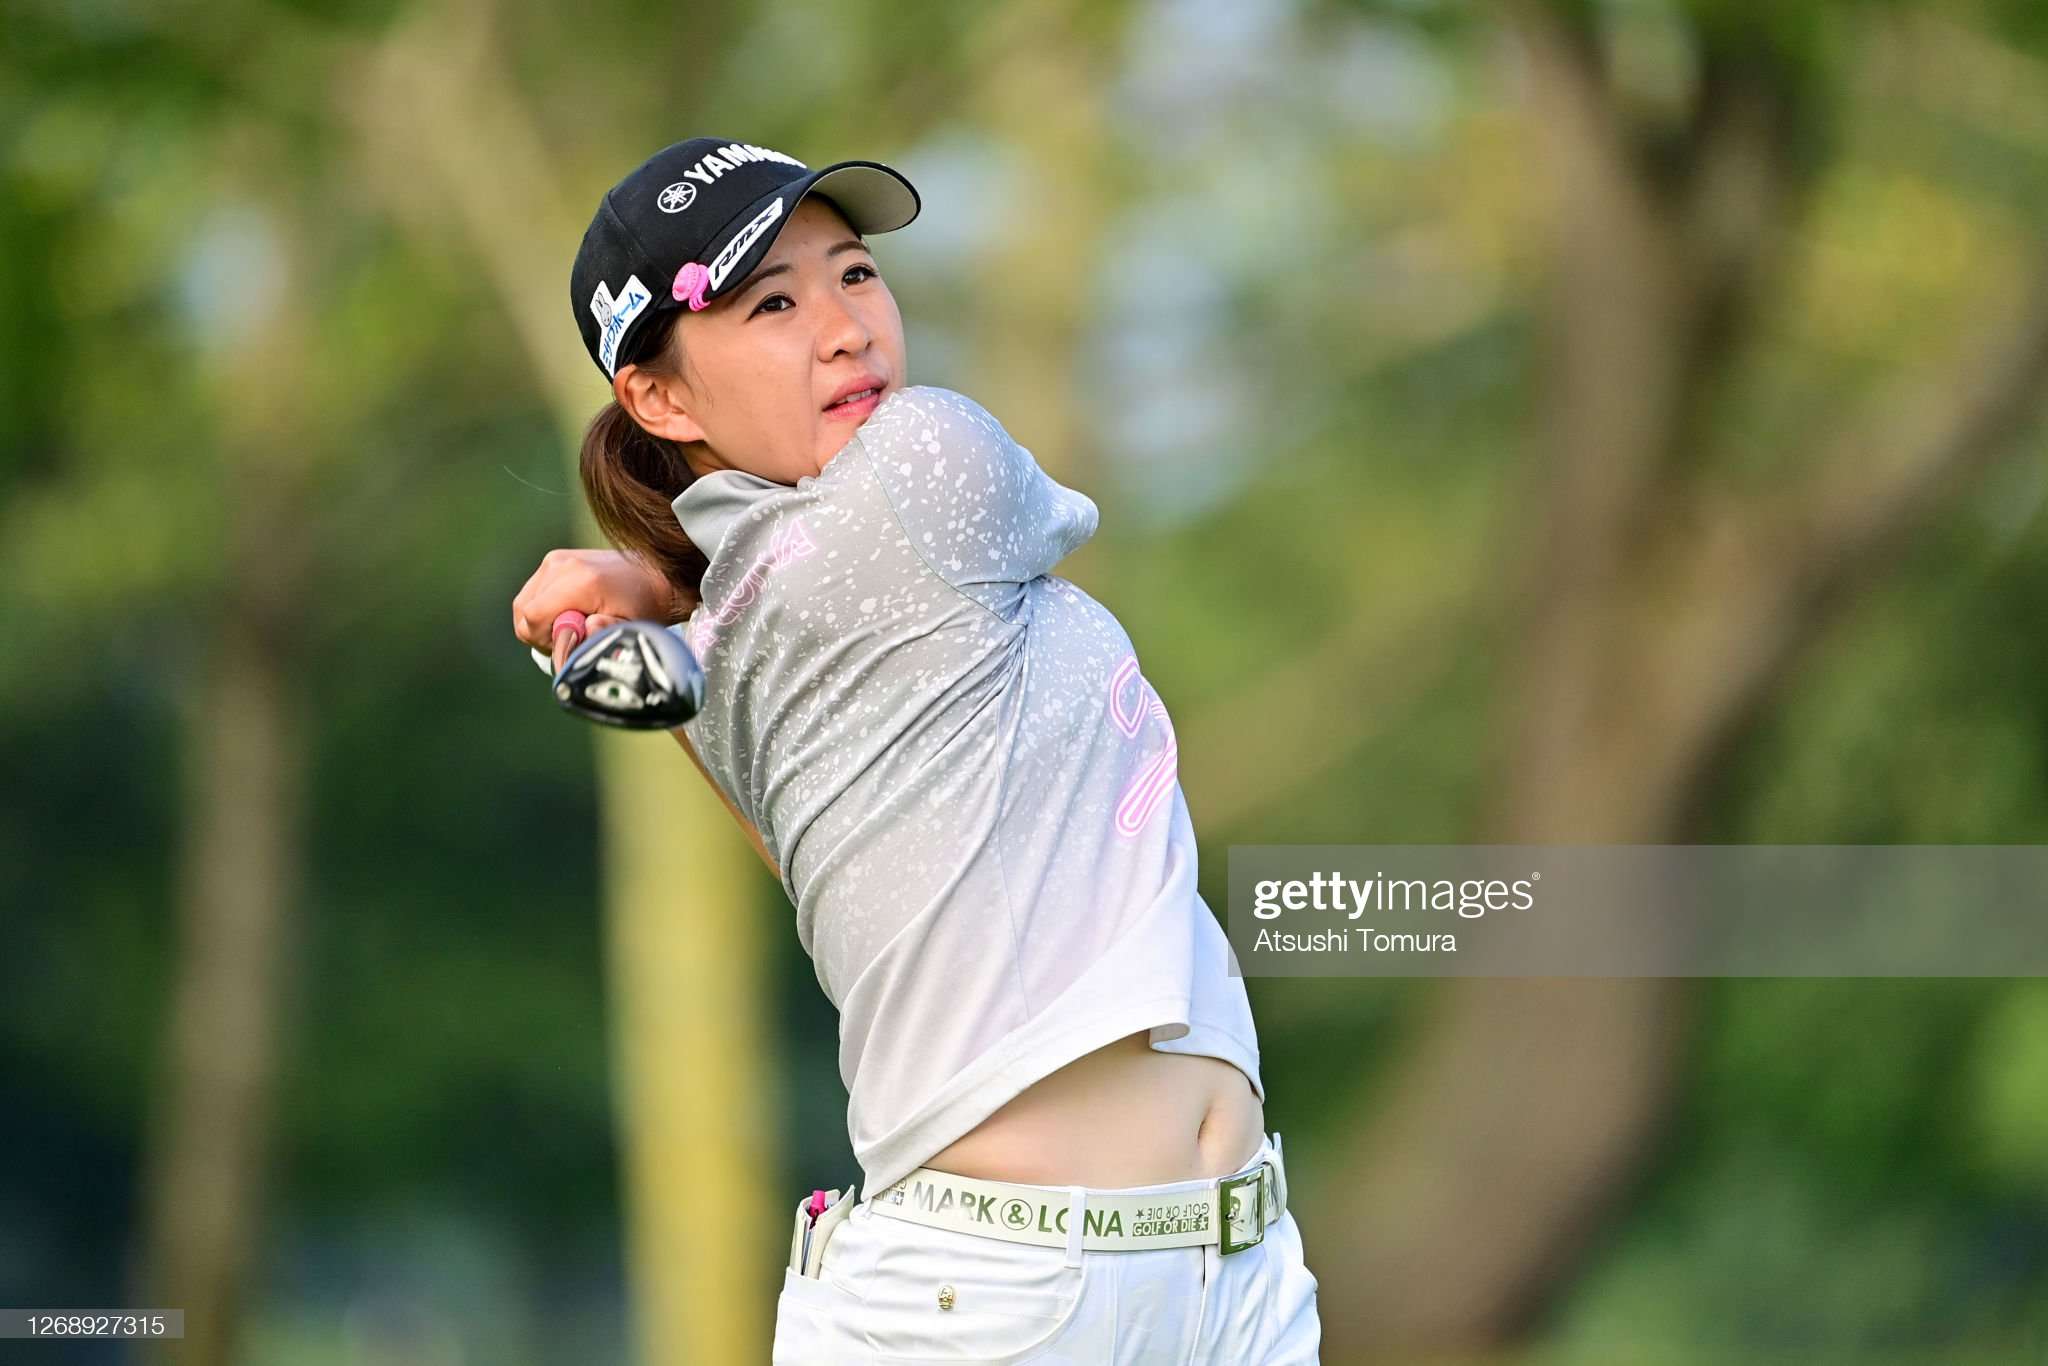 https://media.gettyimages.com/photos/kana-nagai-of-japan-hits-her-tee-shot-on-the-12th-hole-during-the-picture-id1268927315?s=2048x2048